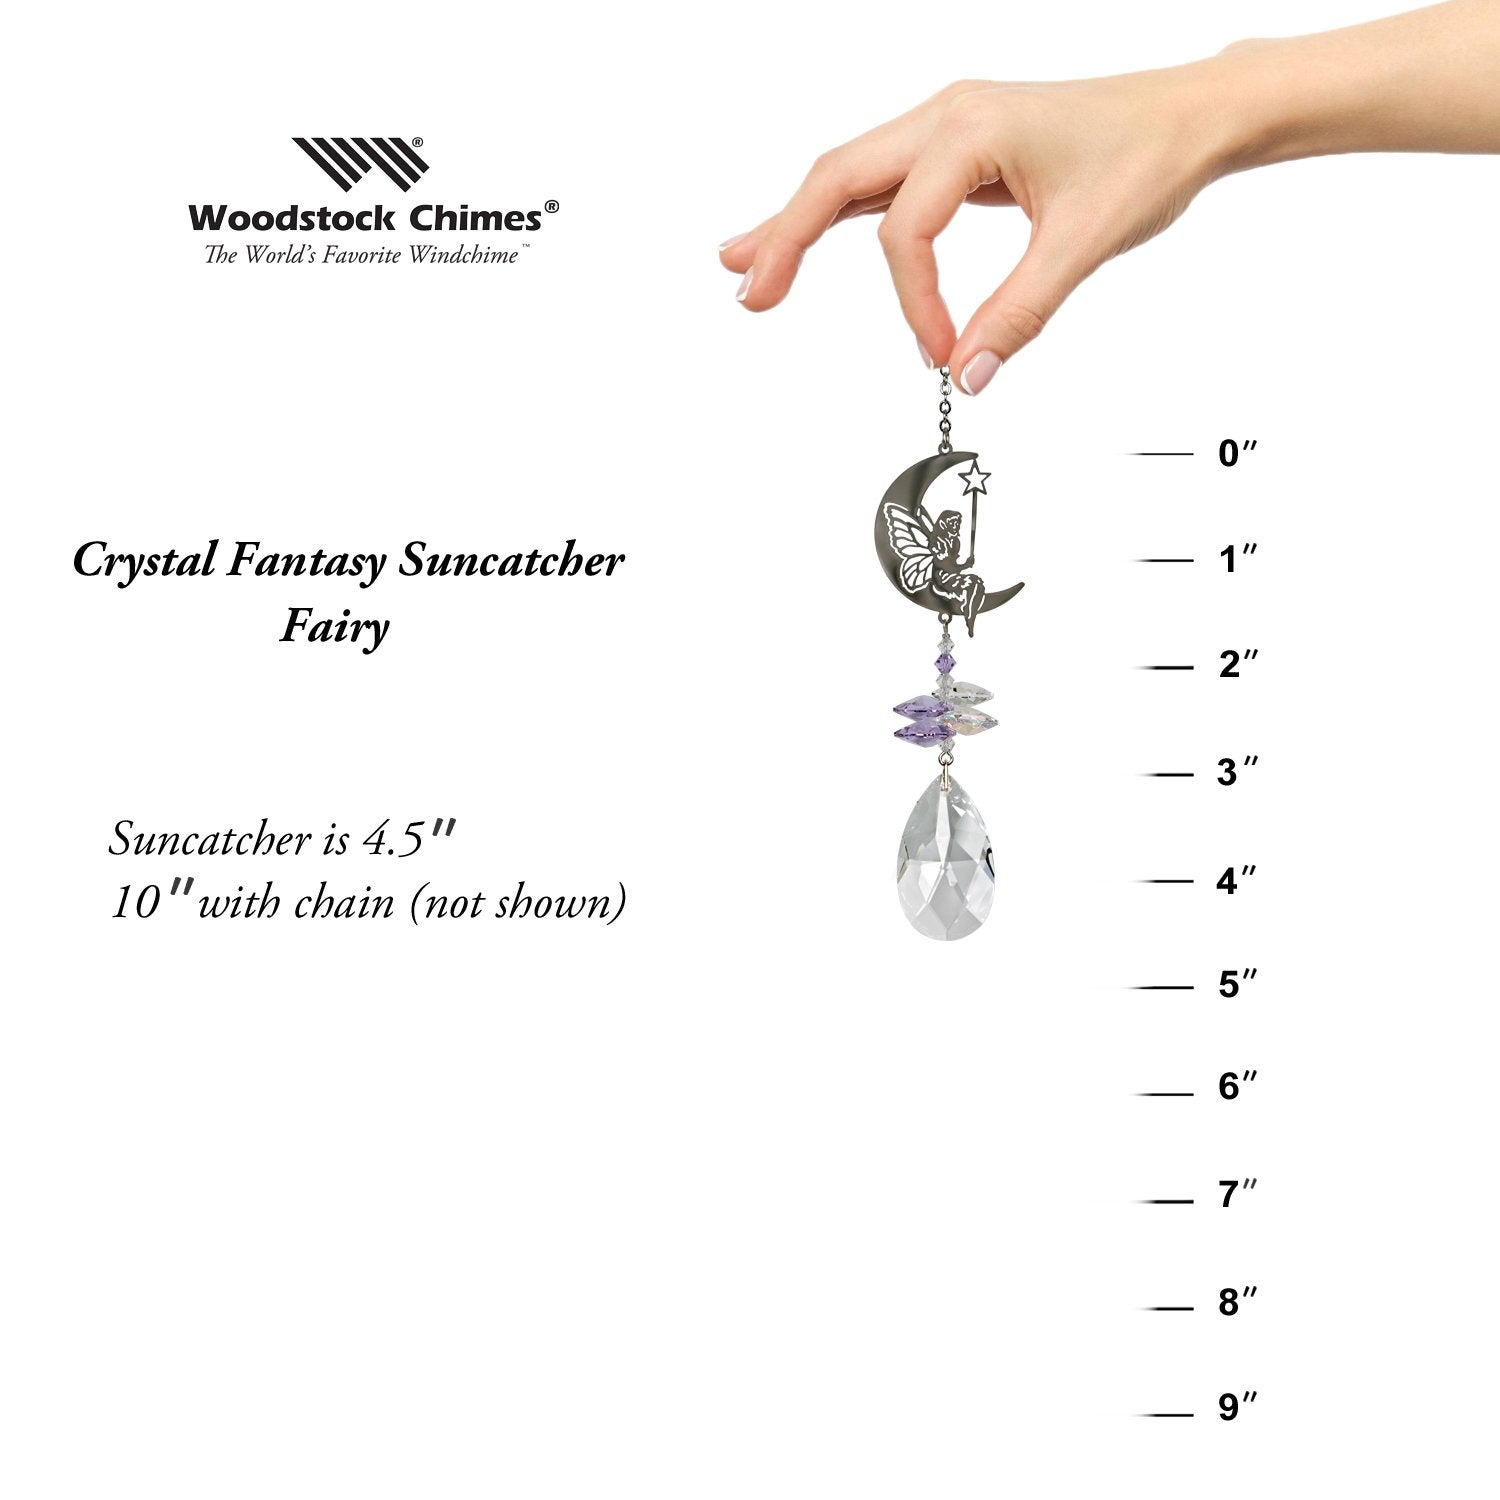 Crystal Fantasy Suncatcher - Fairy proportion image